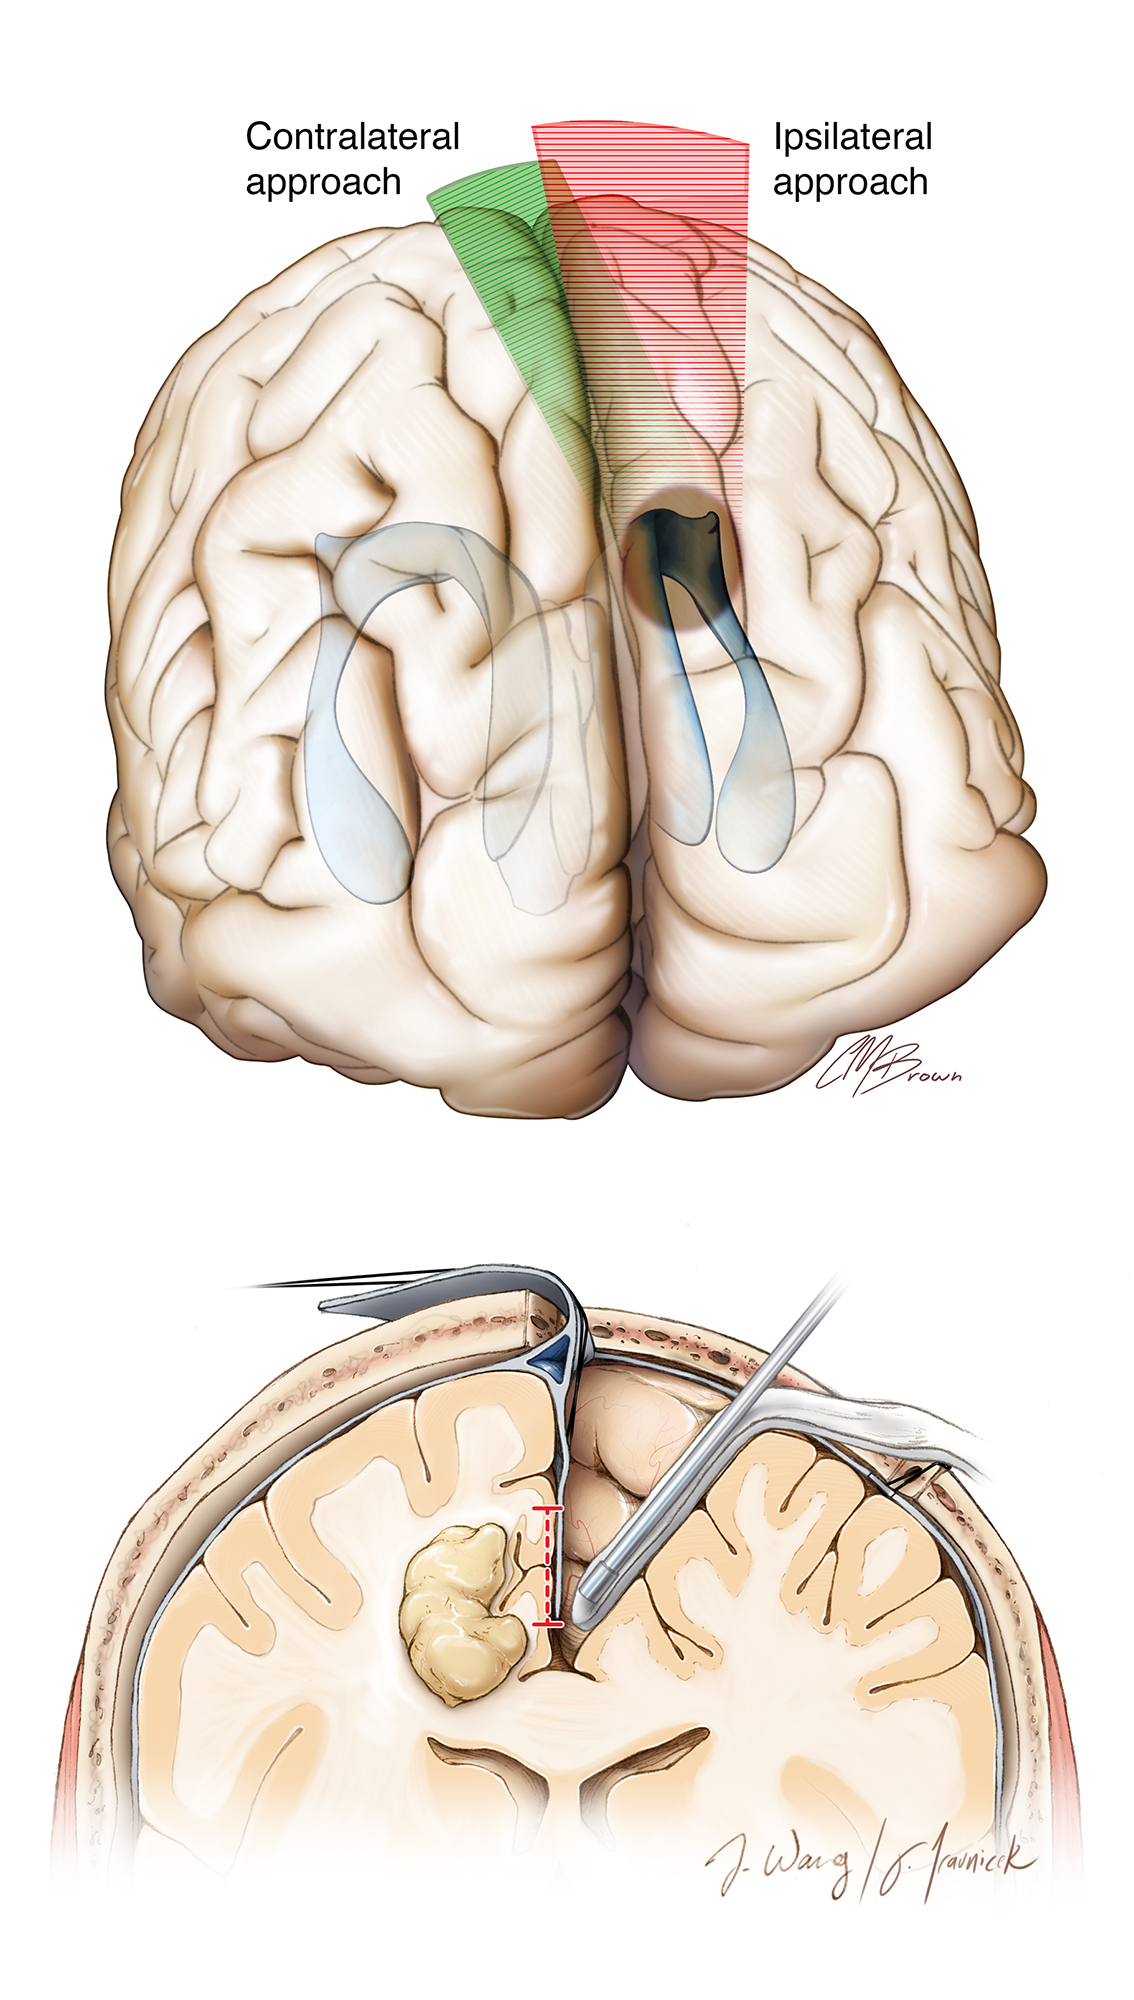 Figure 1: The contralateral transfalcine cross-court corridor (green zone) affords more flexible working angles for lesions that extend laterally. This modification of the ipsilateral interhemispheric route reduces retraction on the ipsilateral hemisphere (red zone) while reaching the lateral pole of the tumor (top). An overview of the technical details for this modifed route is described in the second illustration (bottom).